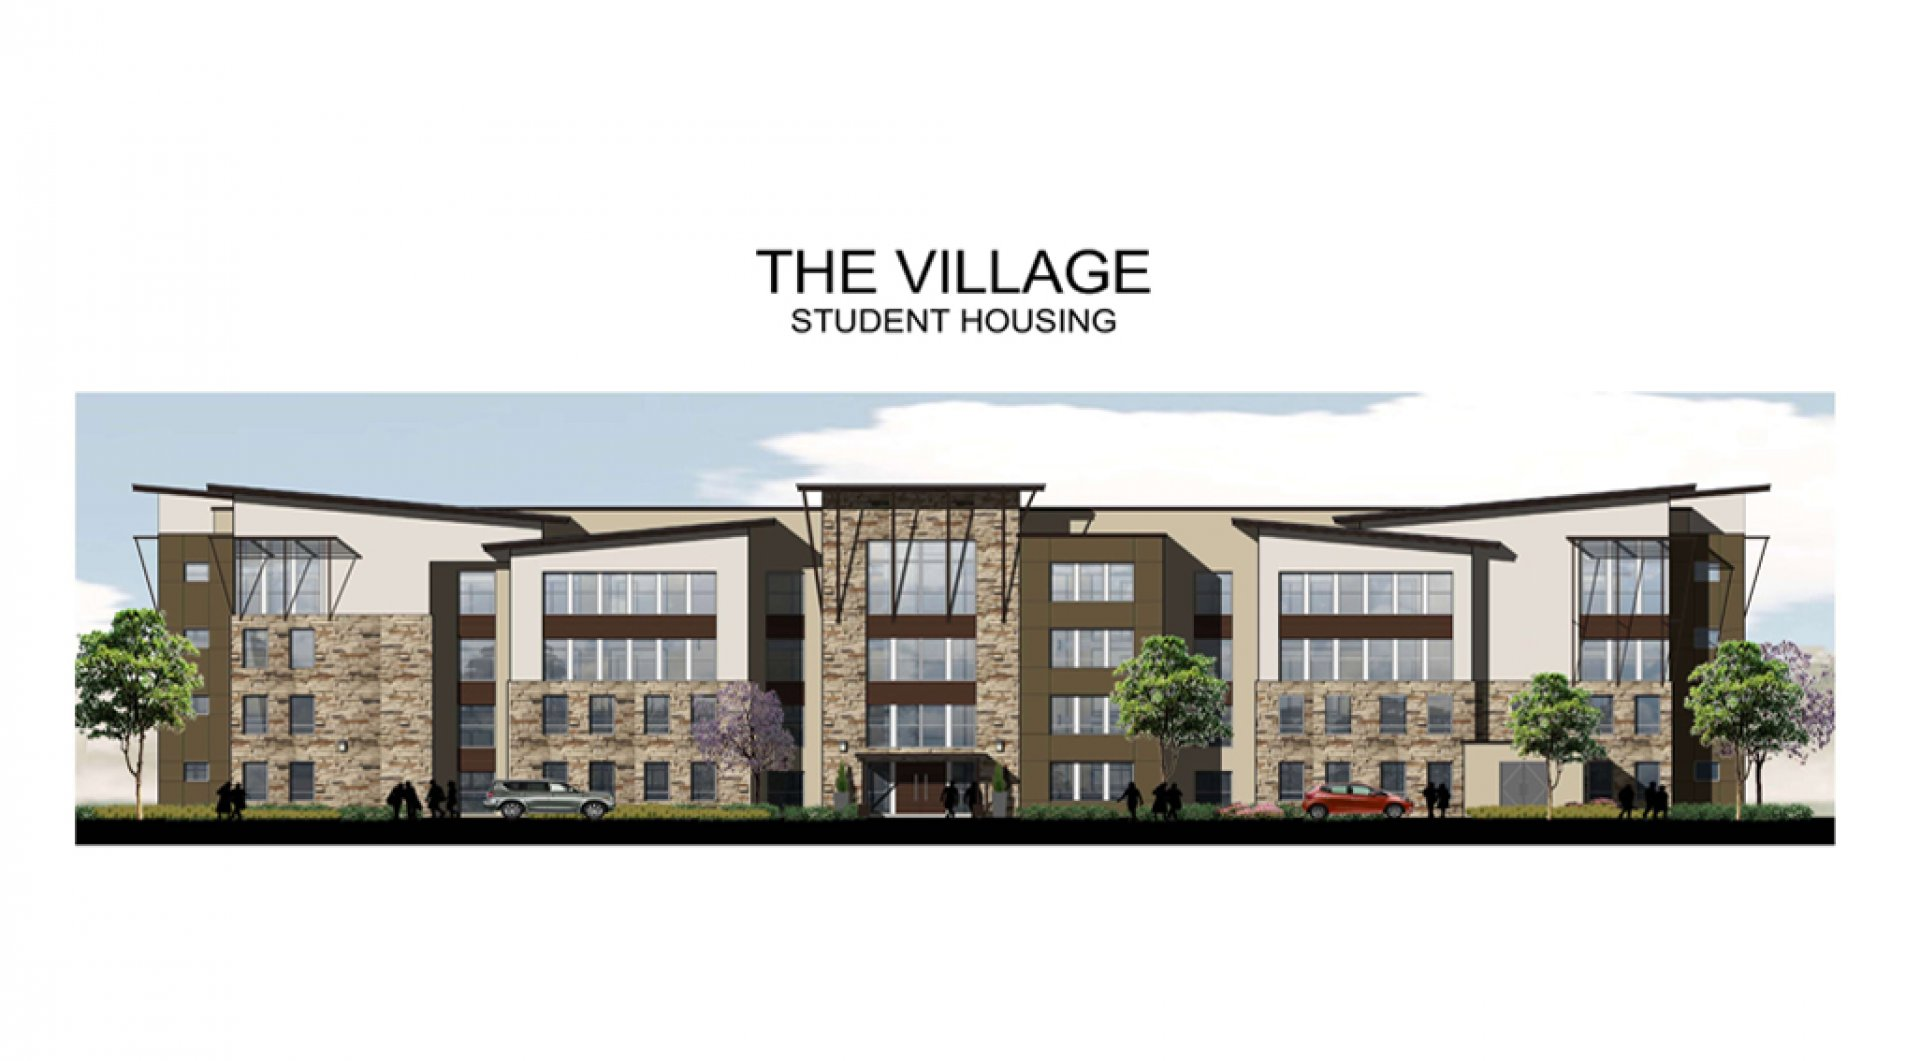 Future AMCAL rendering of the proposed project, The Village, will get another chance at making Arcata home.